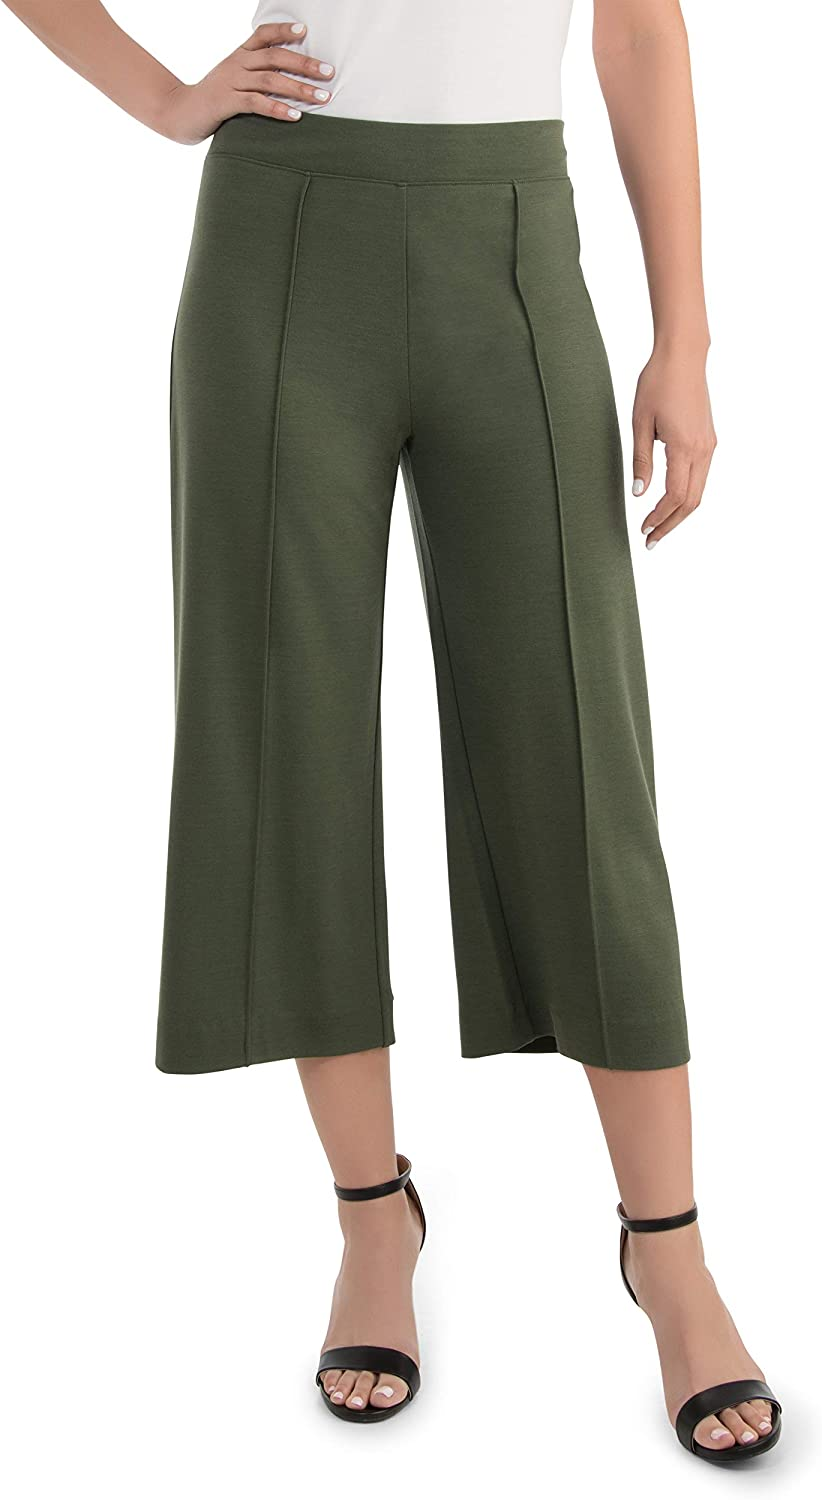 Seek No Further by Fruit of the Loom Women's Wide Leg Ponte Cropped Pants